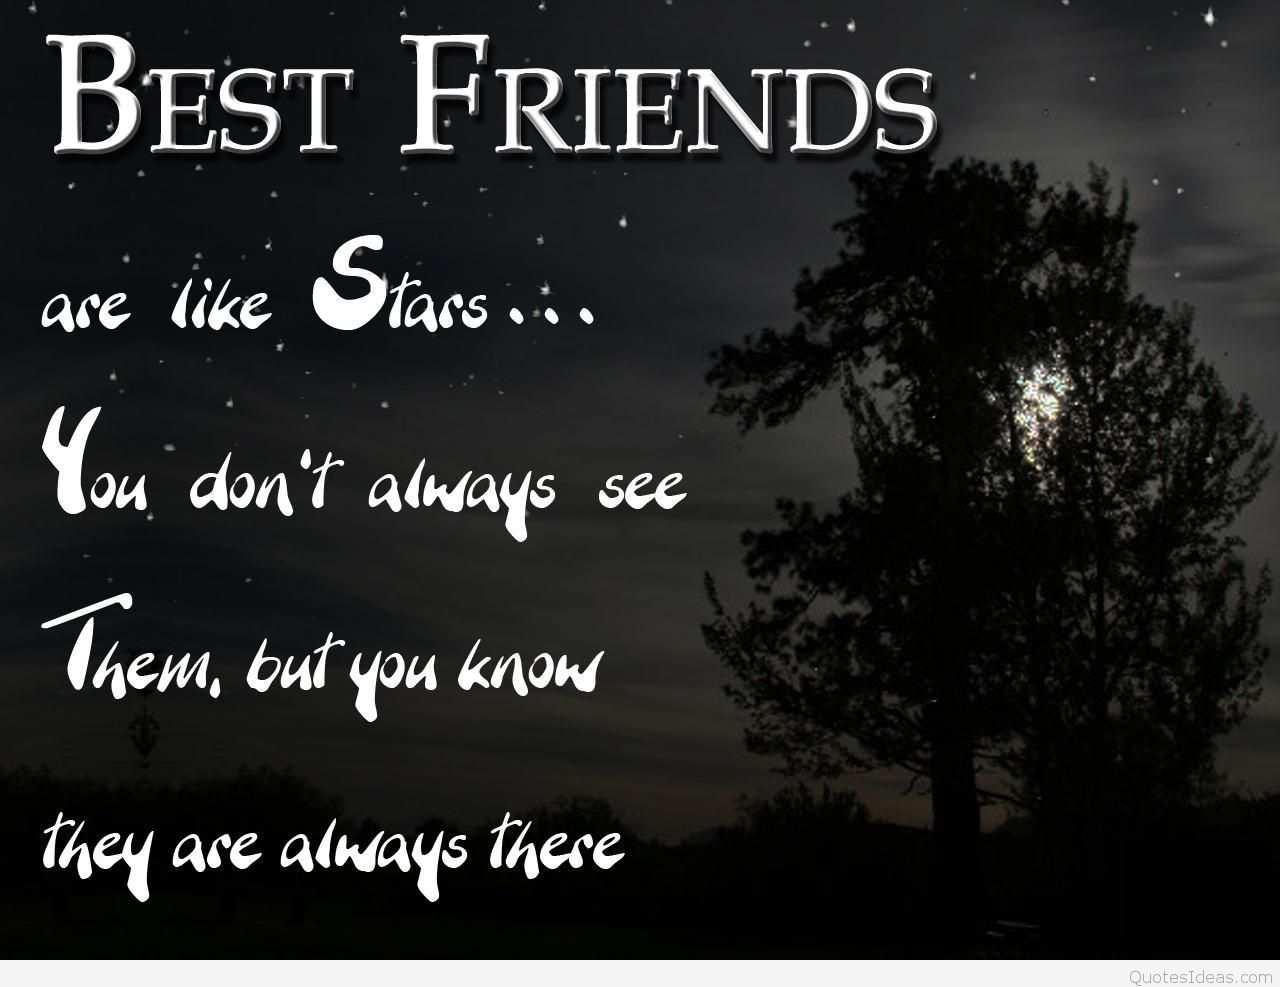 best friends quote wallpaper wwwTrendingHDwallpaperscom 1280x987